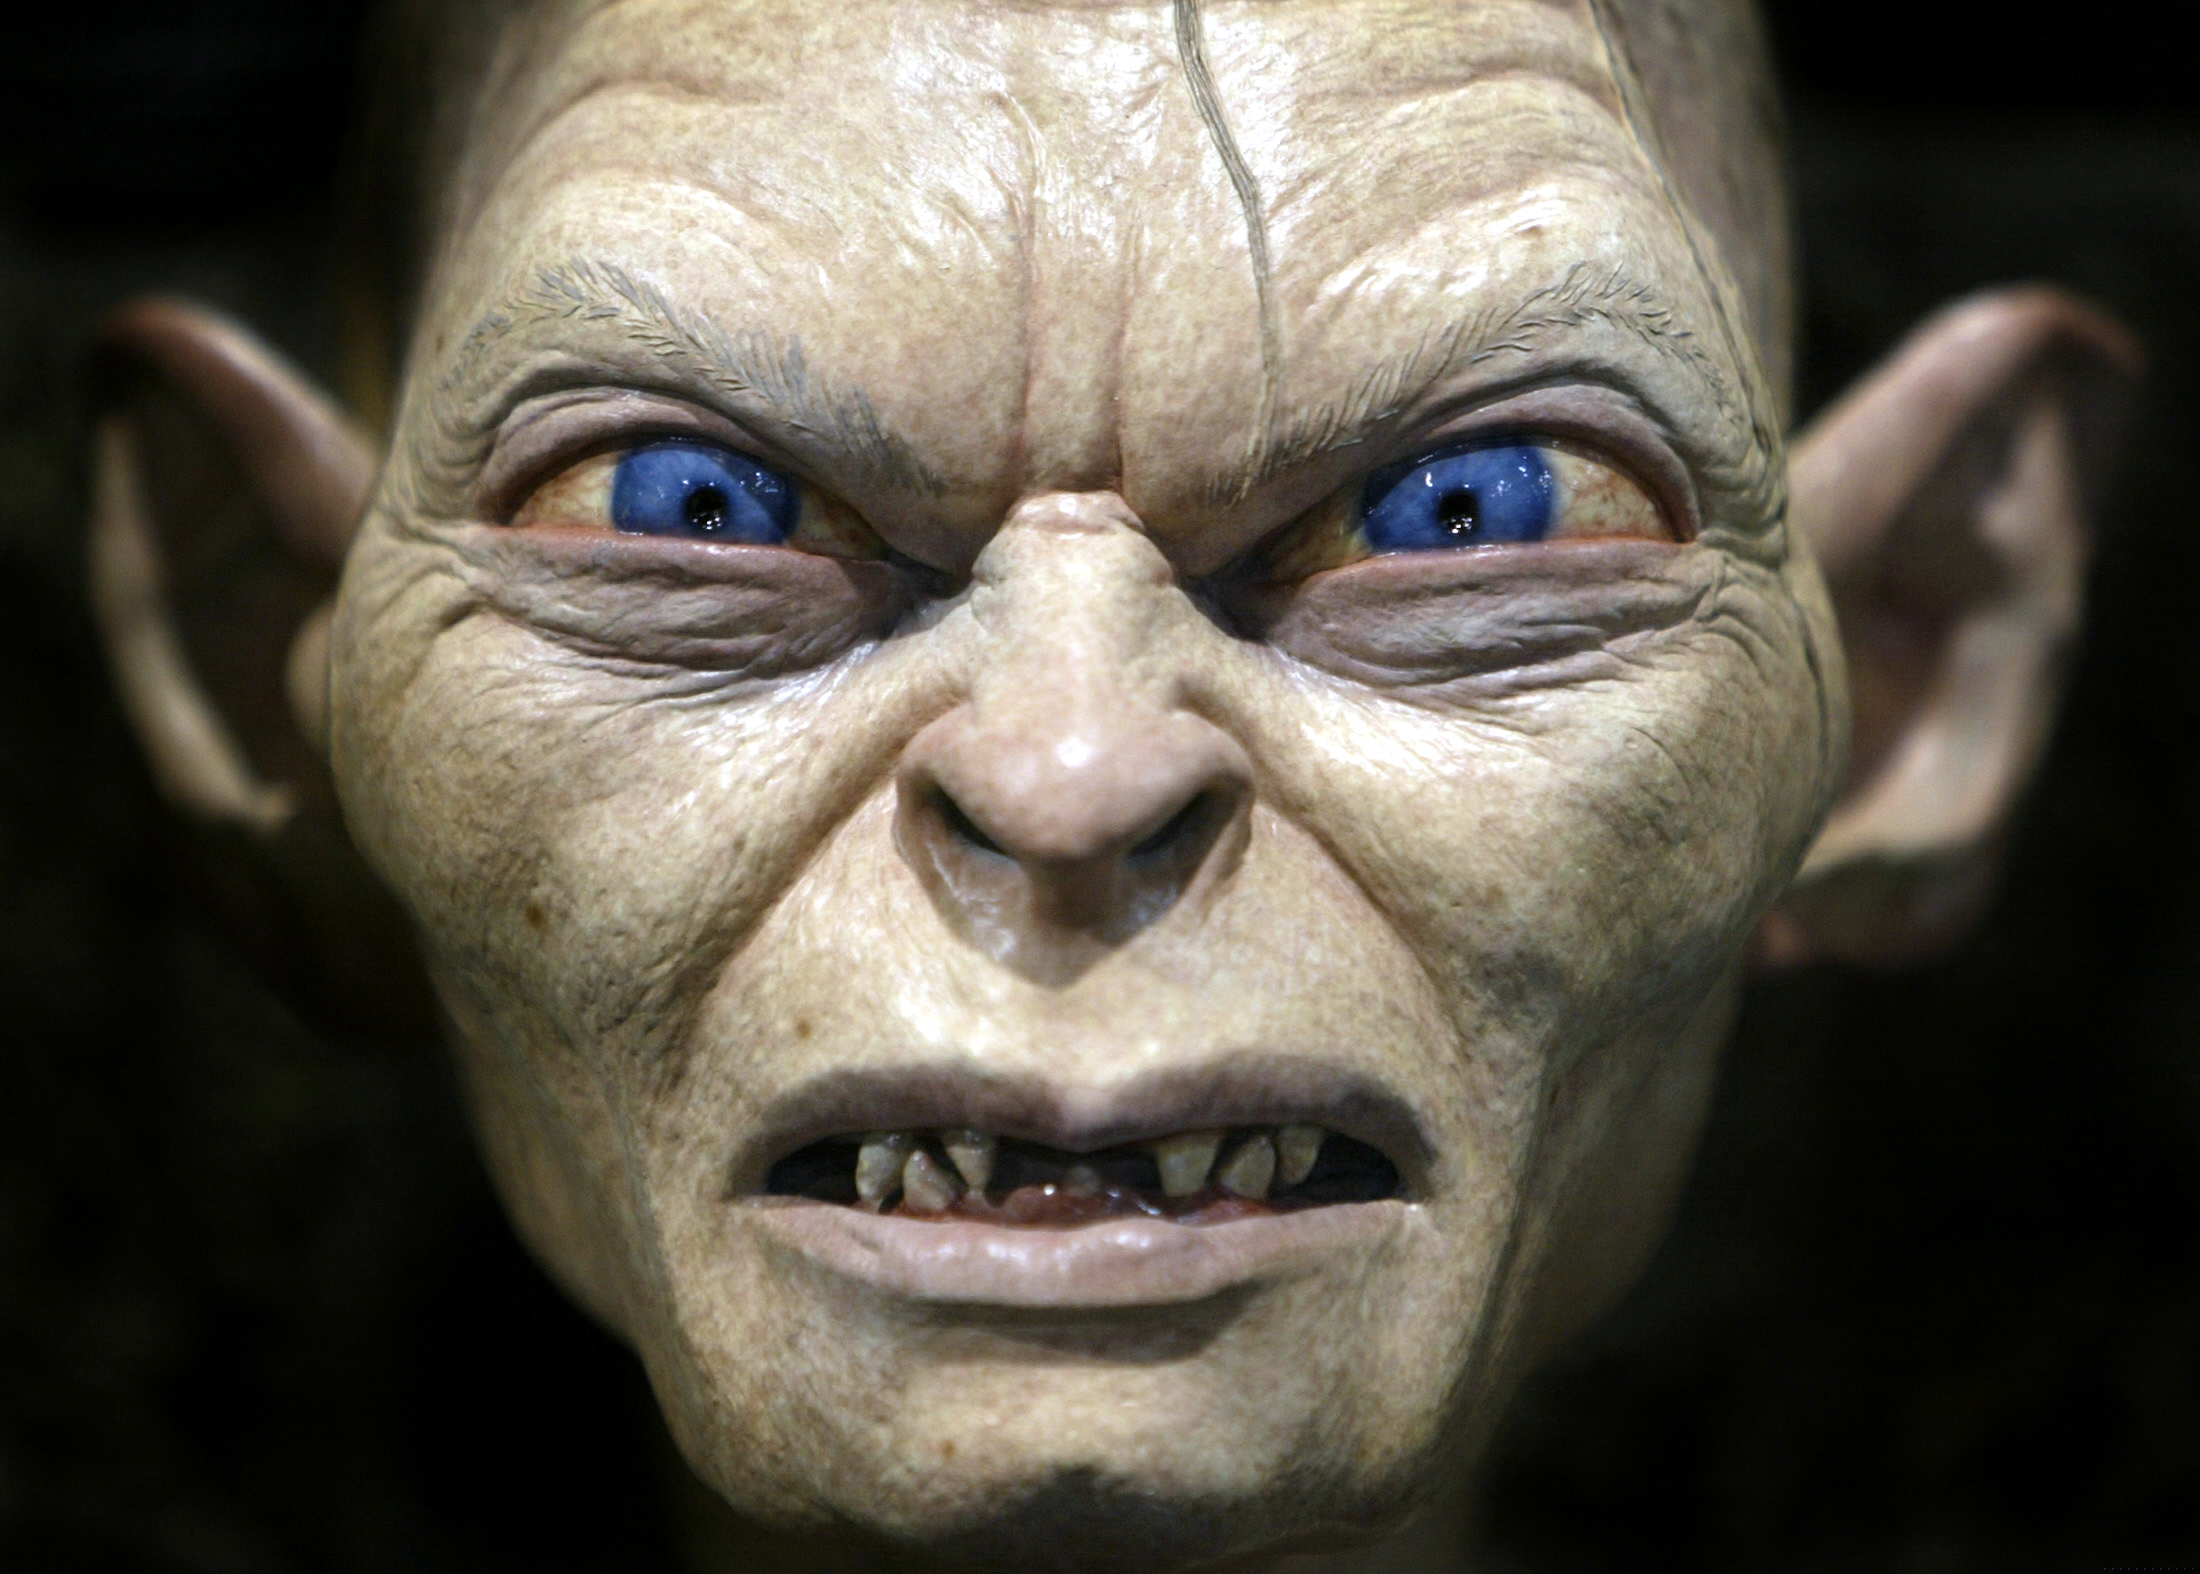 Gollum, a special-effects creature from the movie Lord of the Rings,                    is on display at the annual four-day Comic Con convention in San Diego on July 18, 2003. Thousands of fans from around the world gather to peruse                   a collection of comic books and industry-related sci-fi, video and                   motion-picture fantasy products